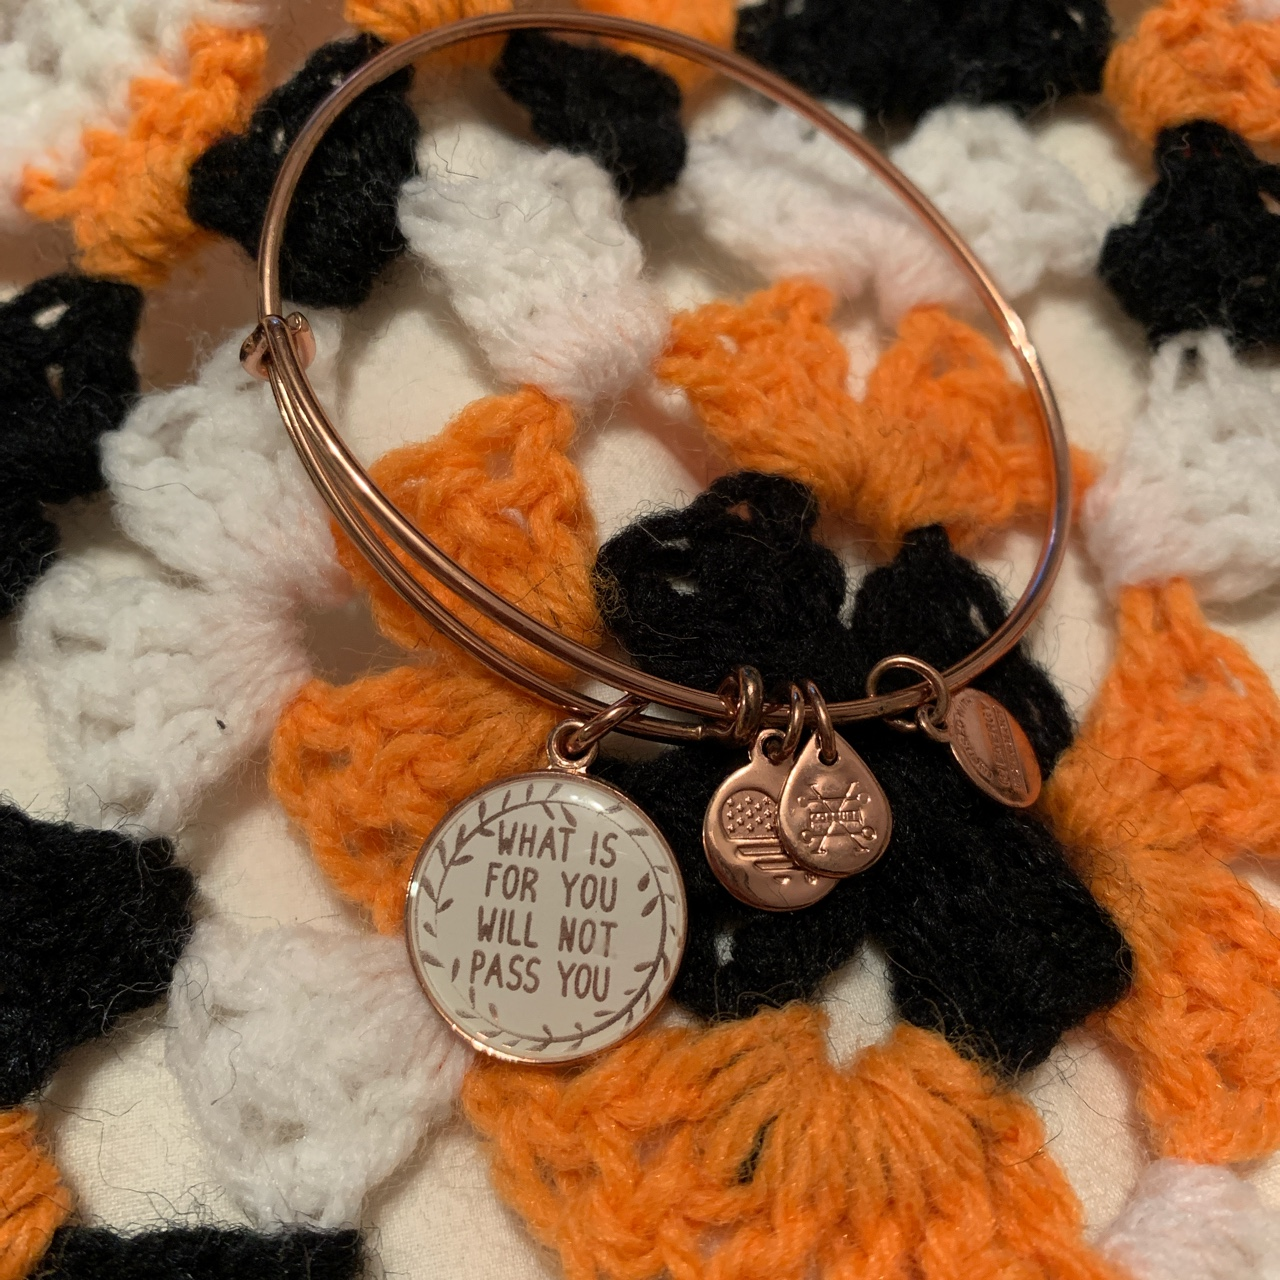 Product Image 1 - Alex and ani adjustable bracelet  #quote#inspiring#cute#girly